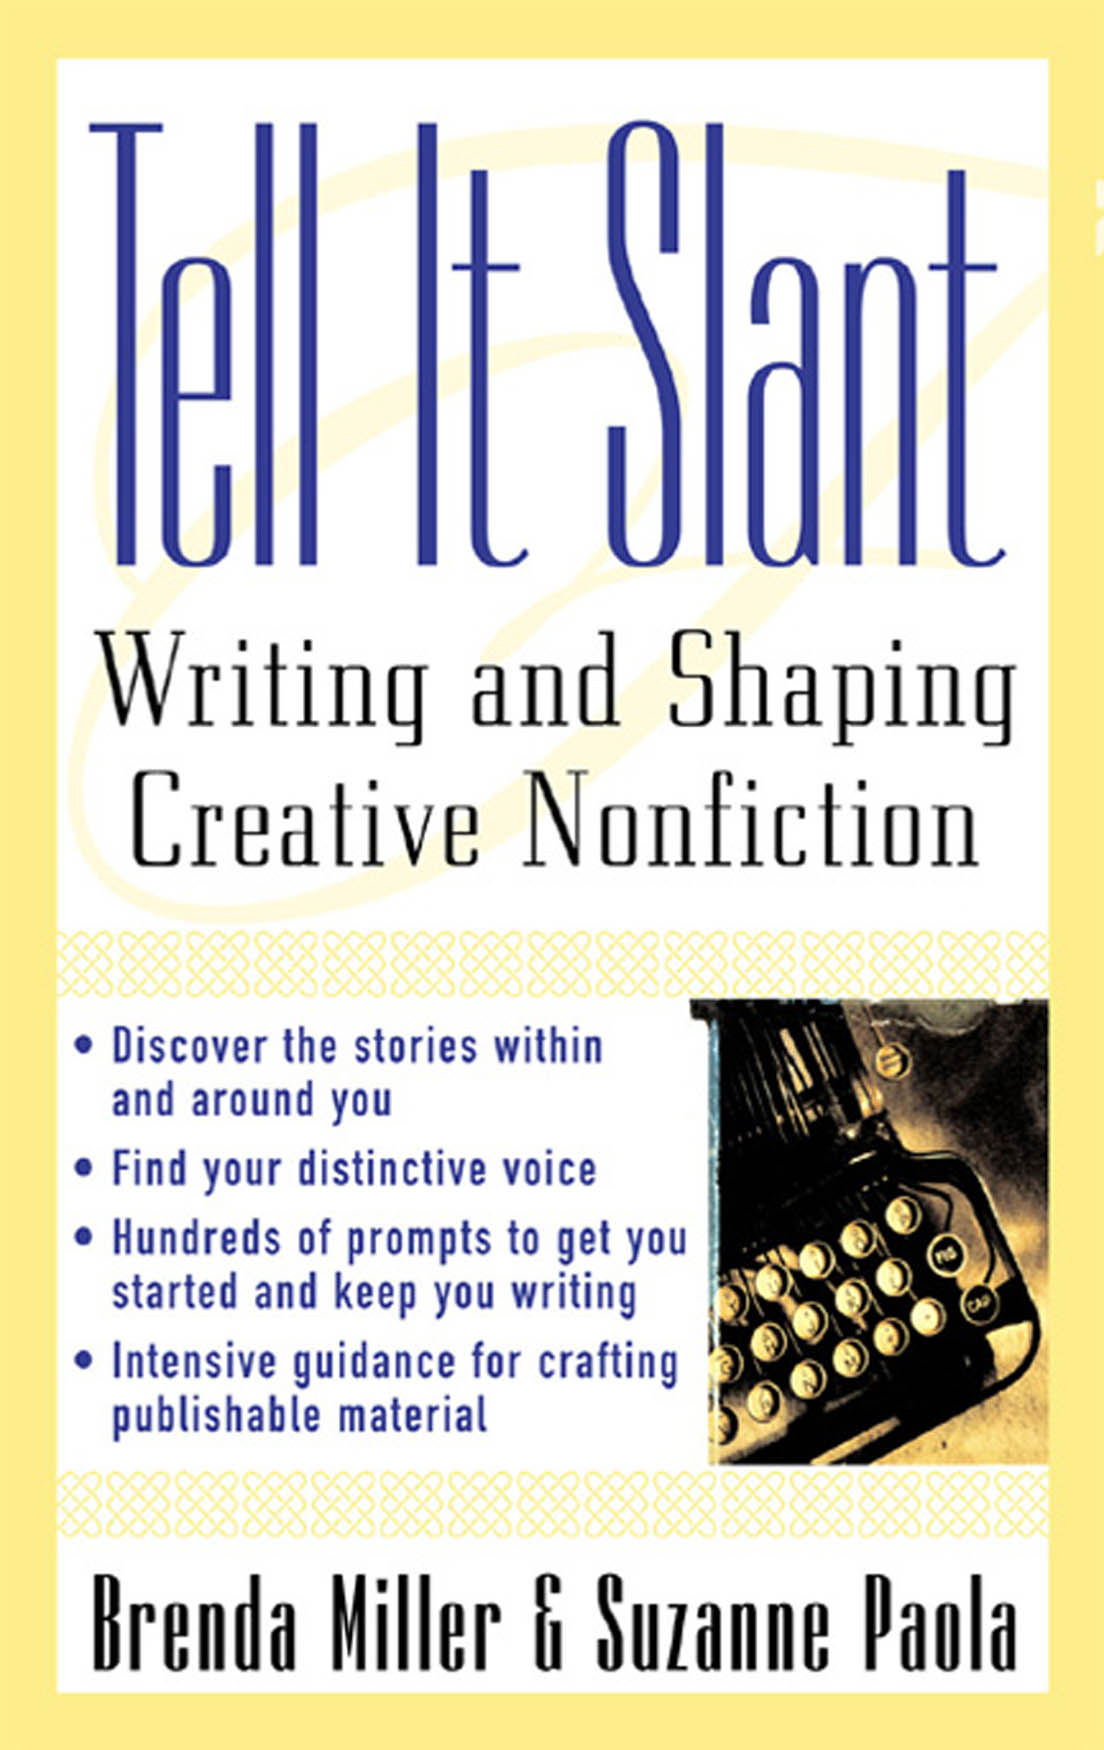 creative writing nonfiction What's notable about creative nonfiction isn't a blurring of the distinction between fiction and nonfiction, but the use of voice, characterization, setting, and.